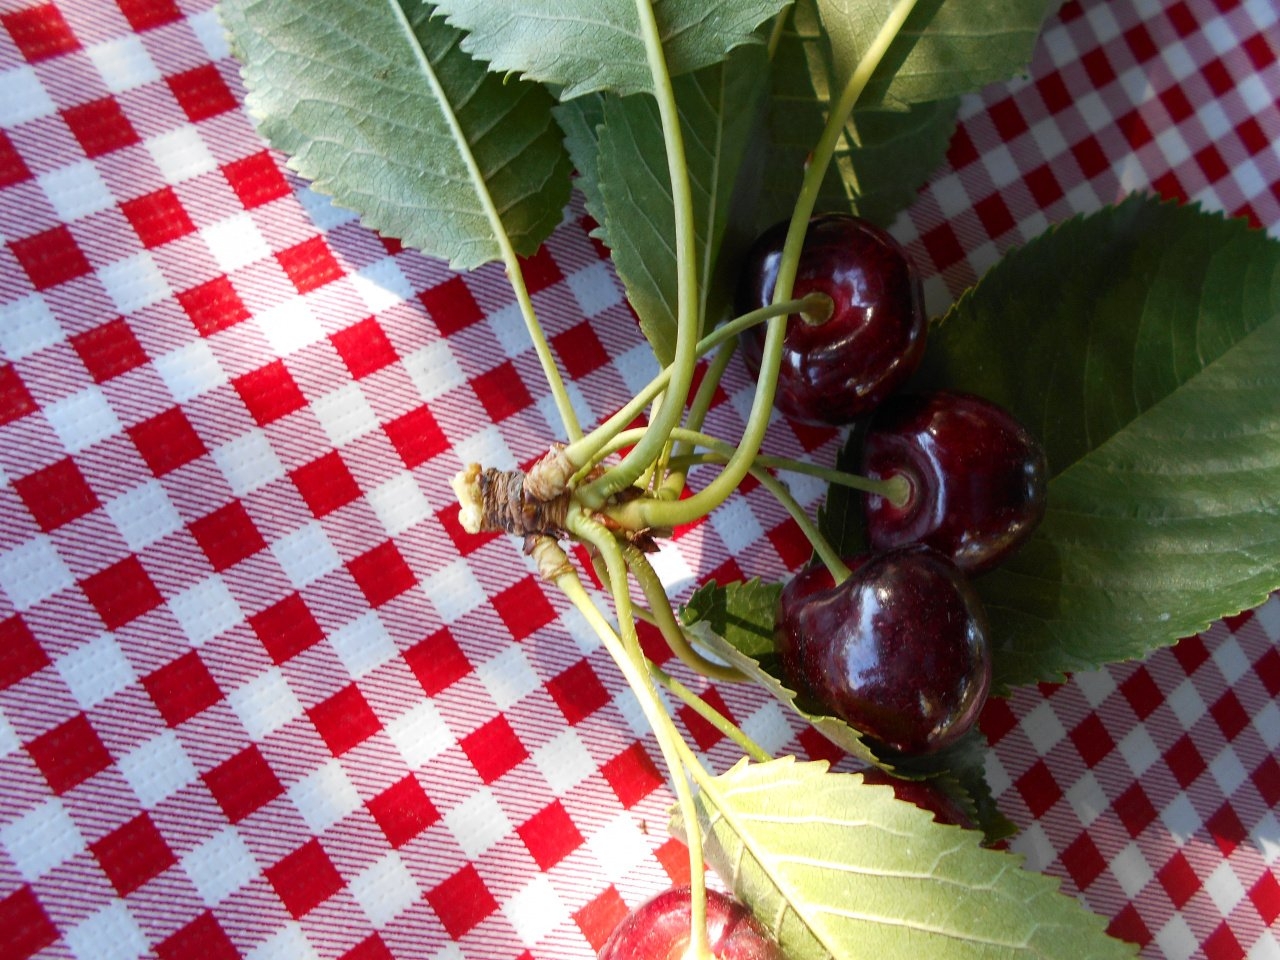 do not pick cherries with the spur and leaves, the wooden spur is where cherries will grow next year